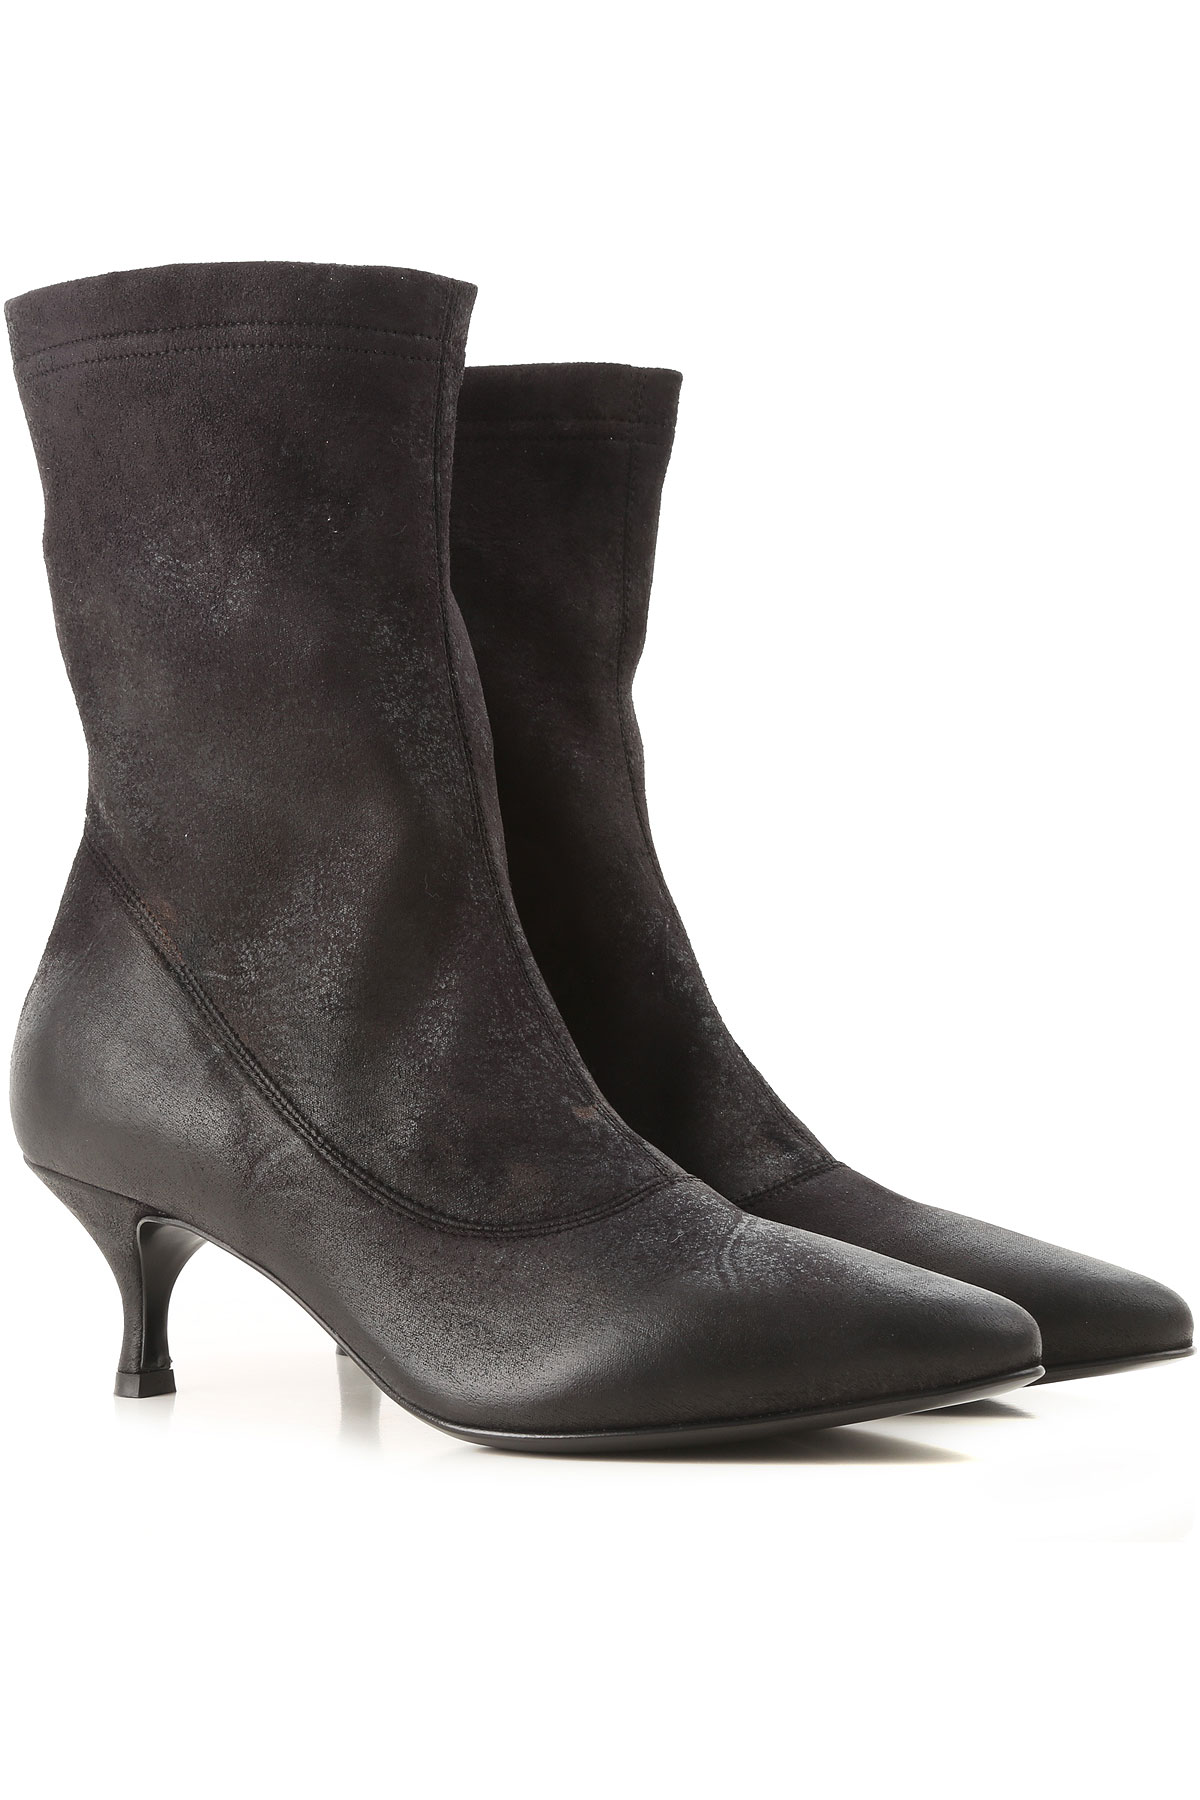 Image of Strategia Boots for Women, Booties, Black, Leather, 2017, 10 6 6.5 7 8